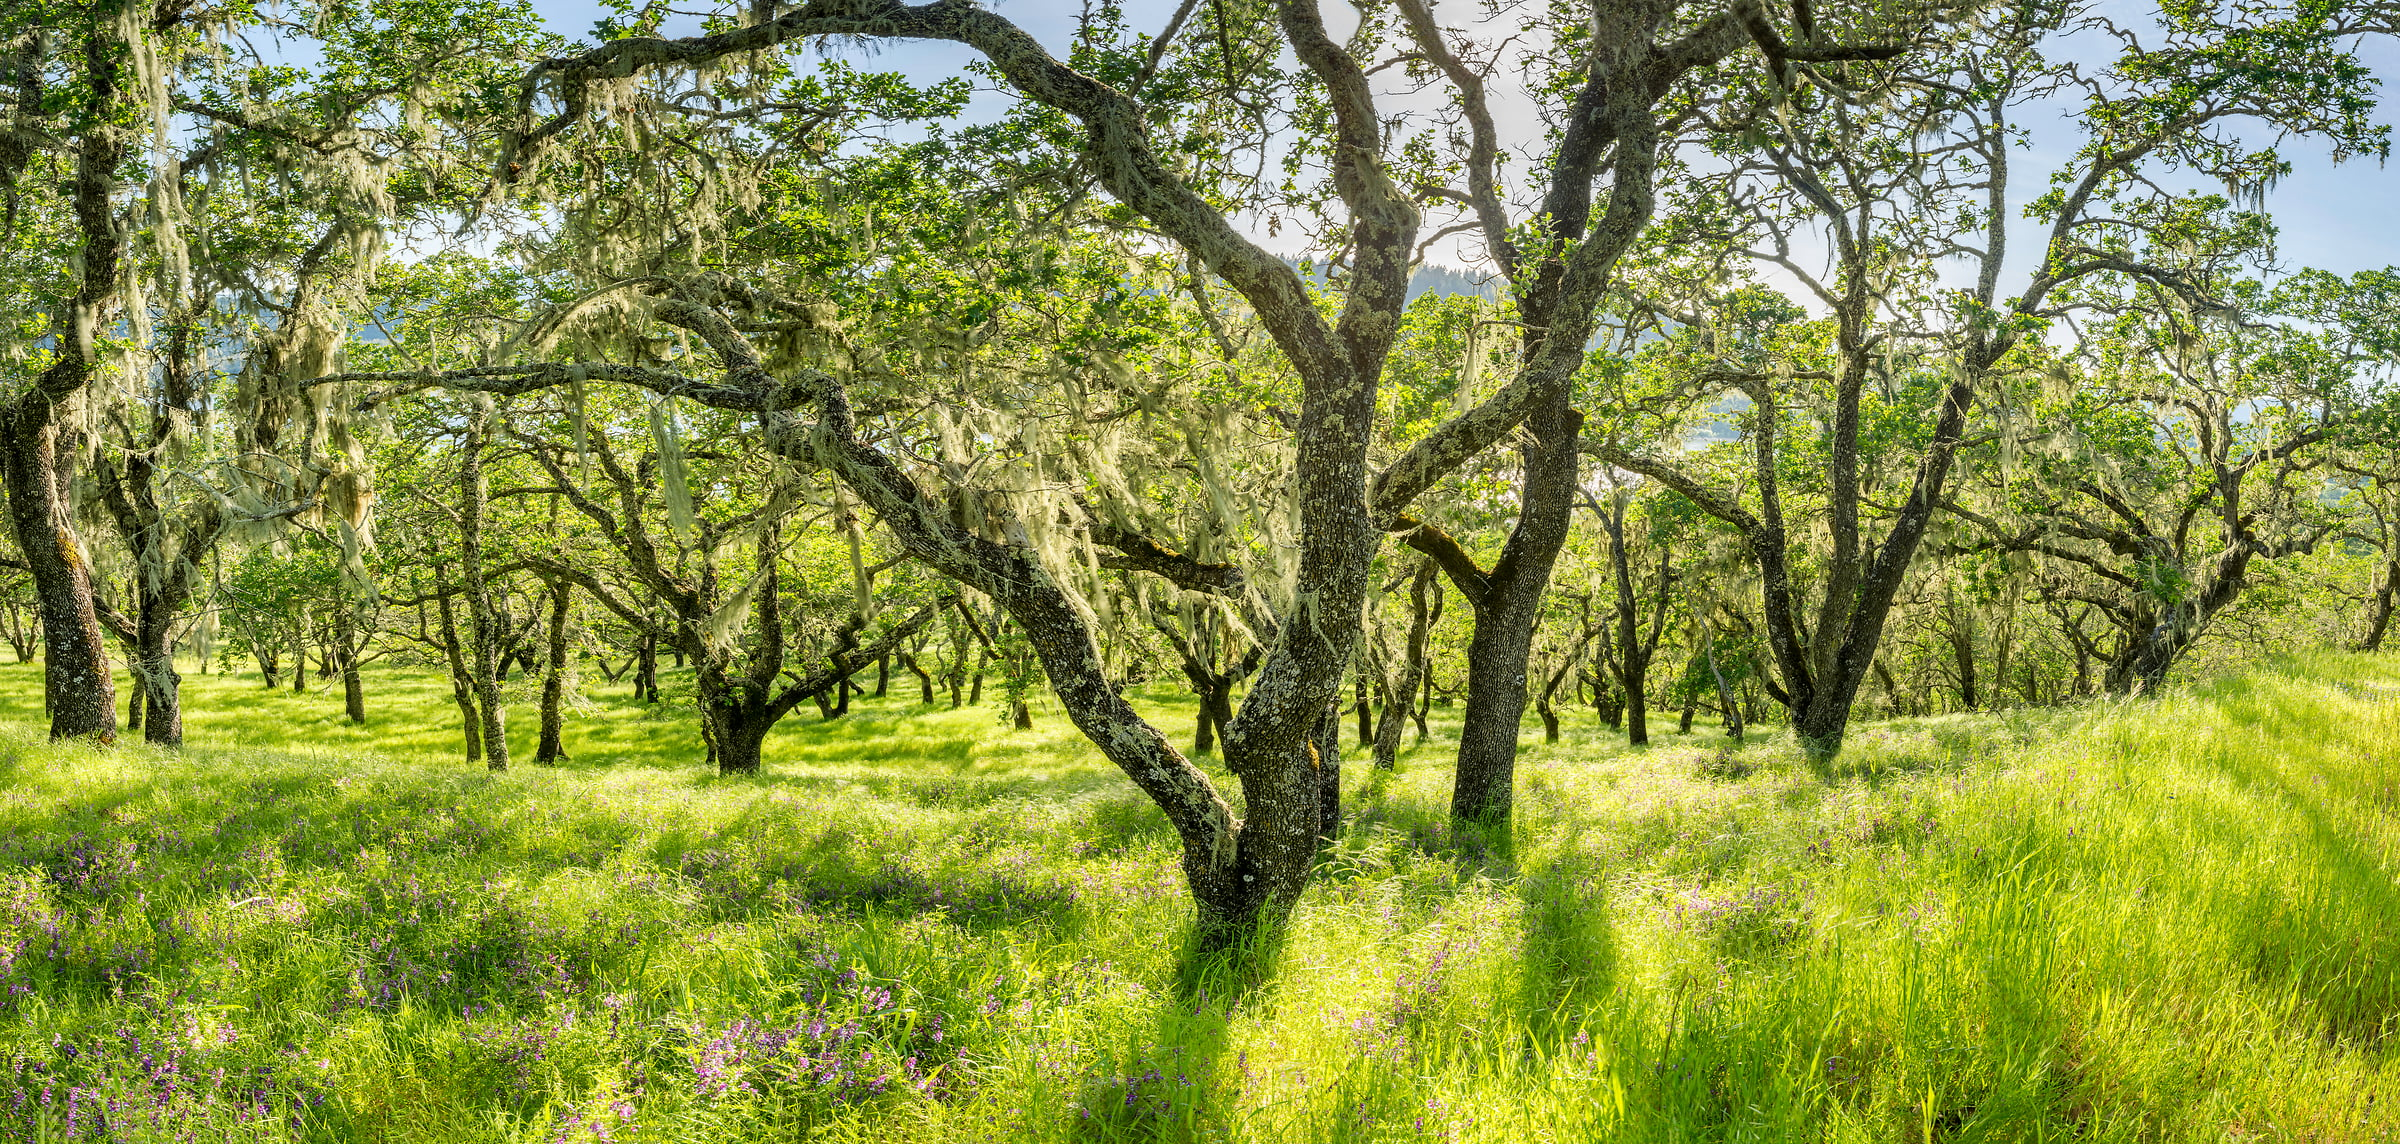 286 megapixels! A very high resolution, large-format VAST photo print of trees in Napa Valley; fine art nature photo created by Justin Katz in Lake Hennessey, Napa Valley, California